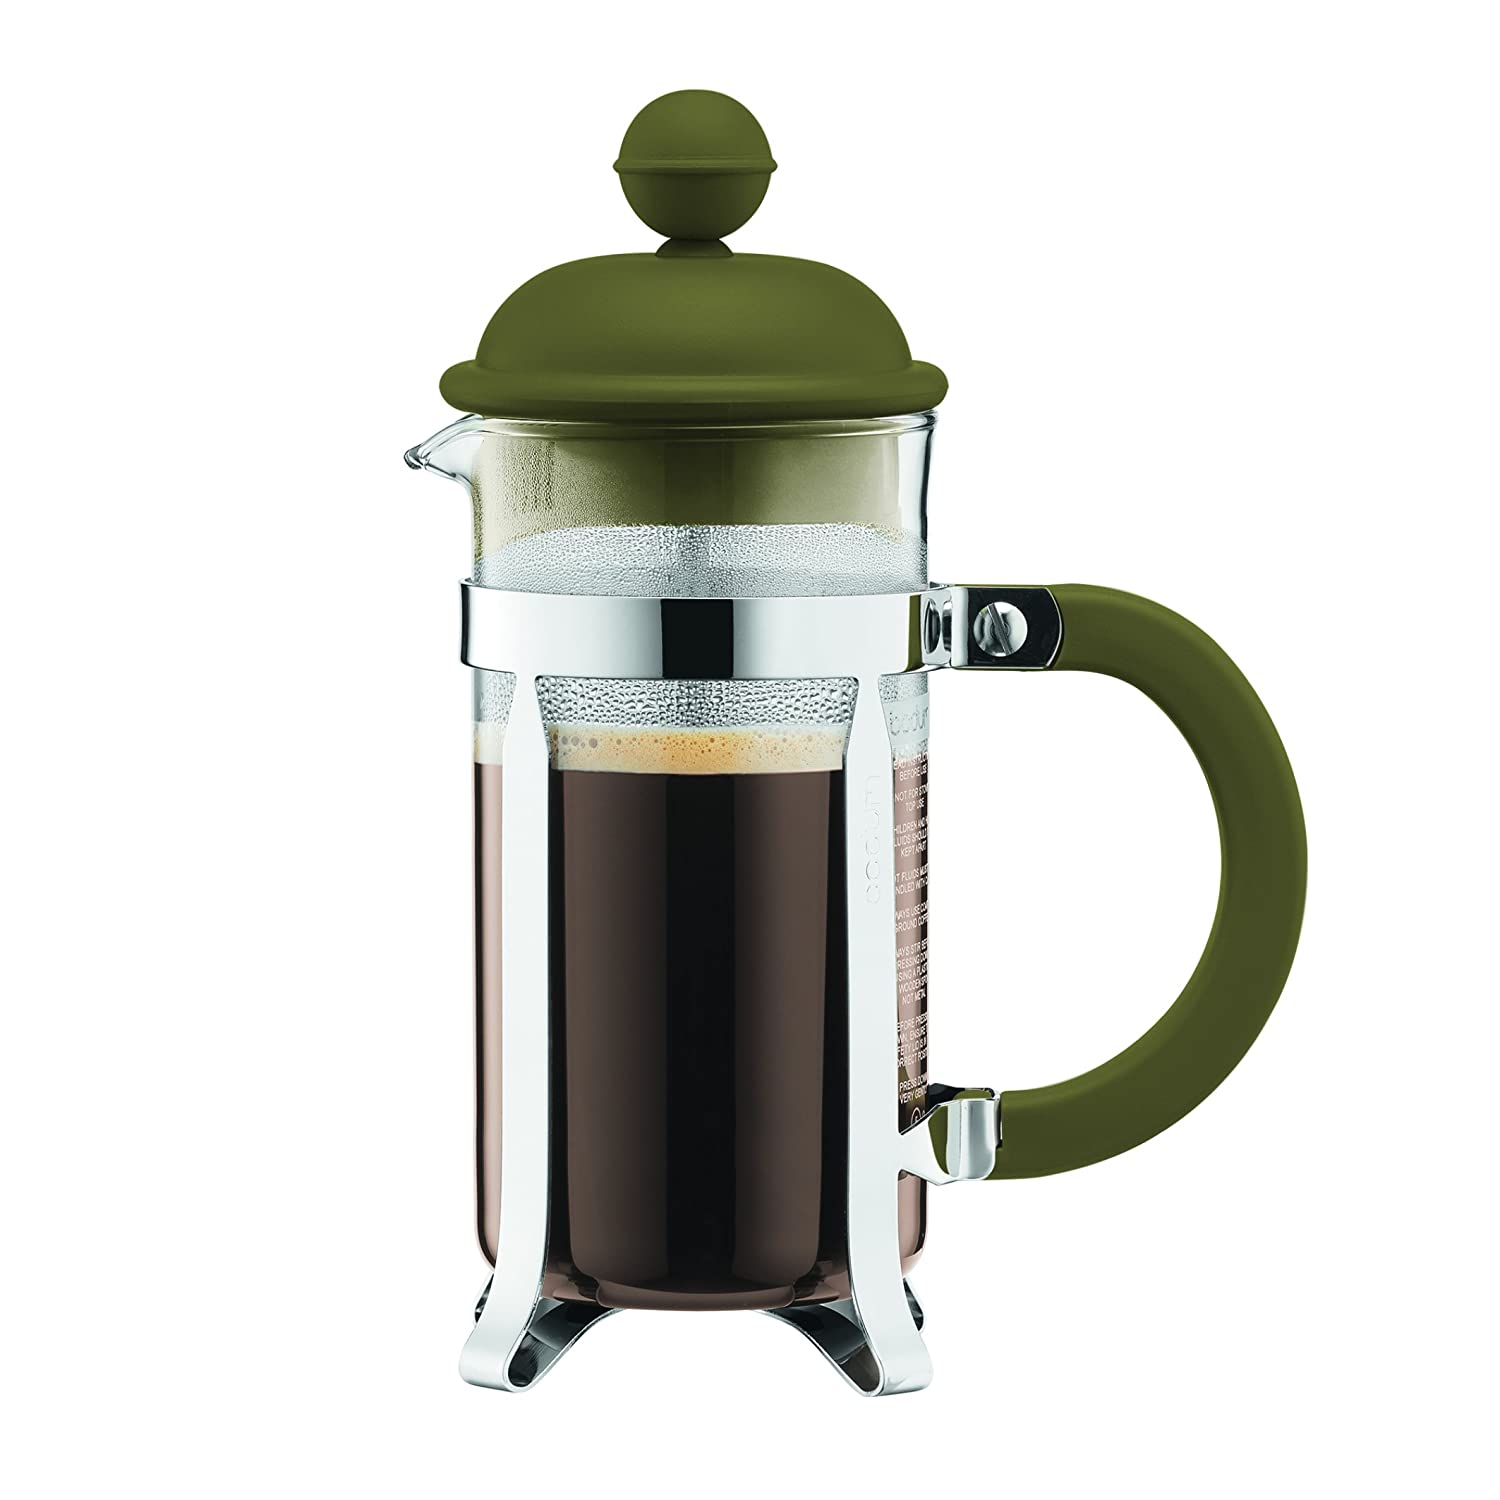 BODUM Caffettiera 3 Cup French Press Coffee Maker, Olive, 0.35 l, 12 oz 1913-947B-Y17